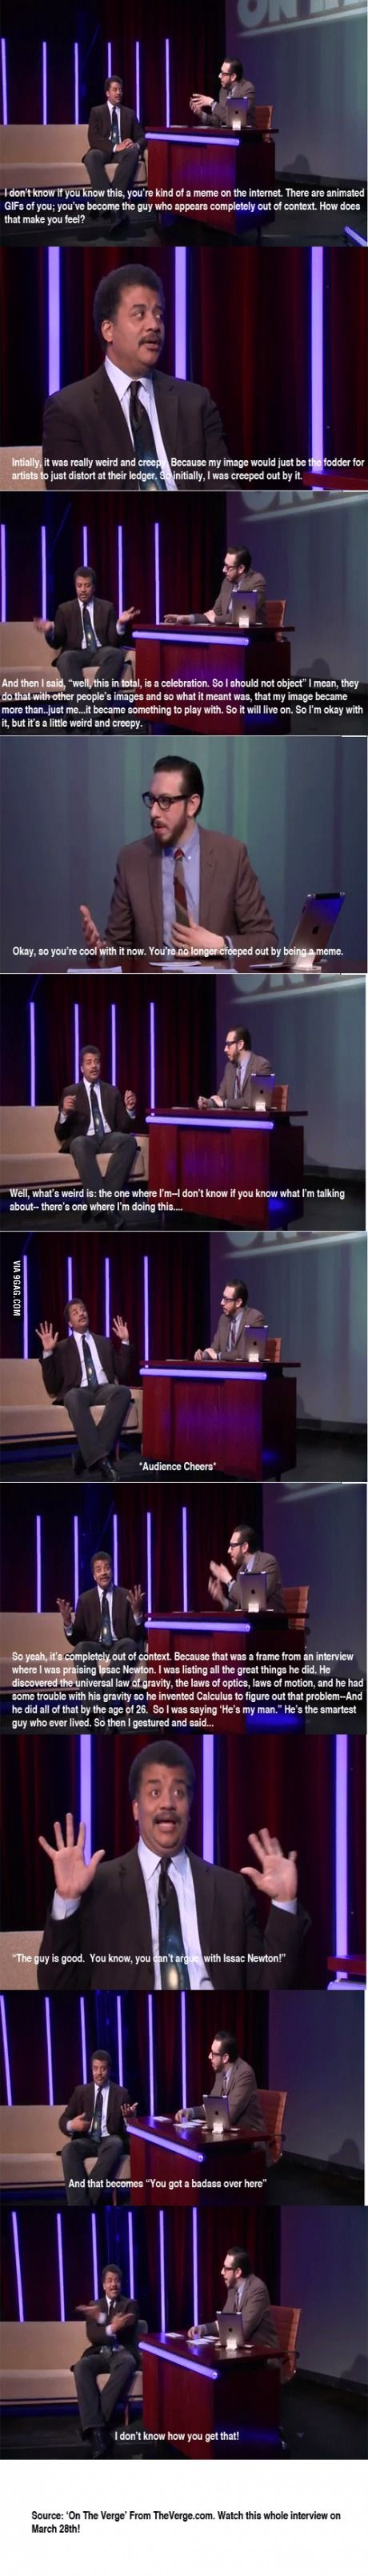 Dr. Neil deGrasse Tyson talks about being a Meme